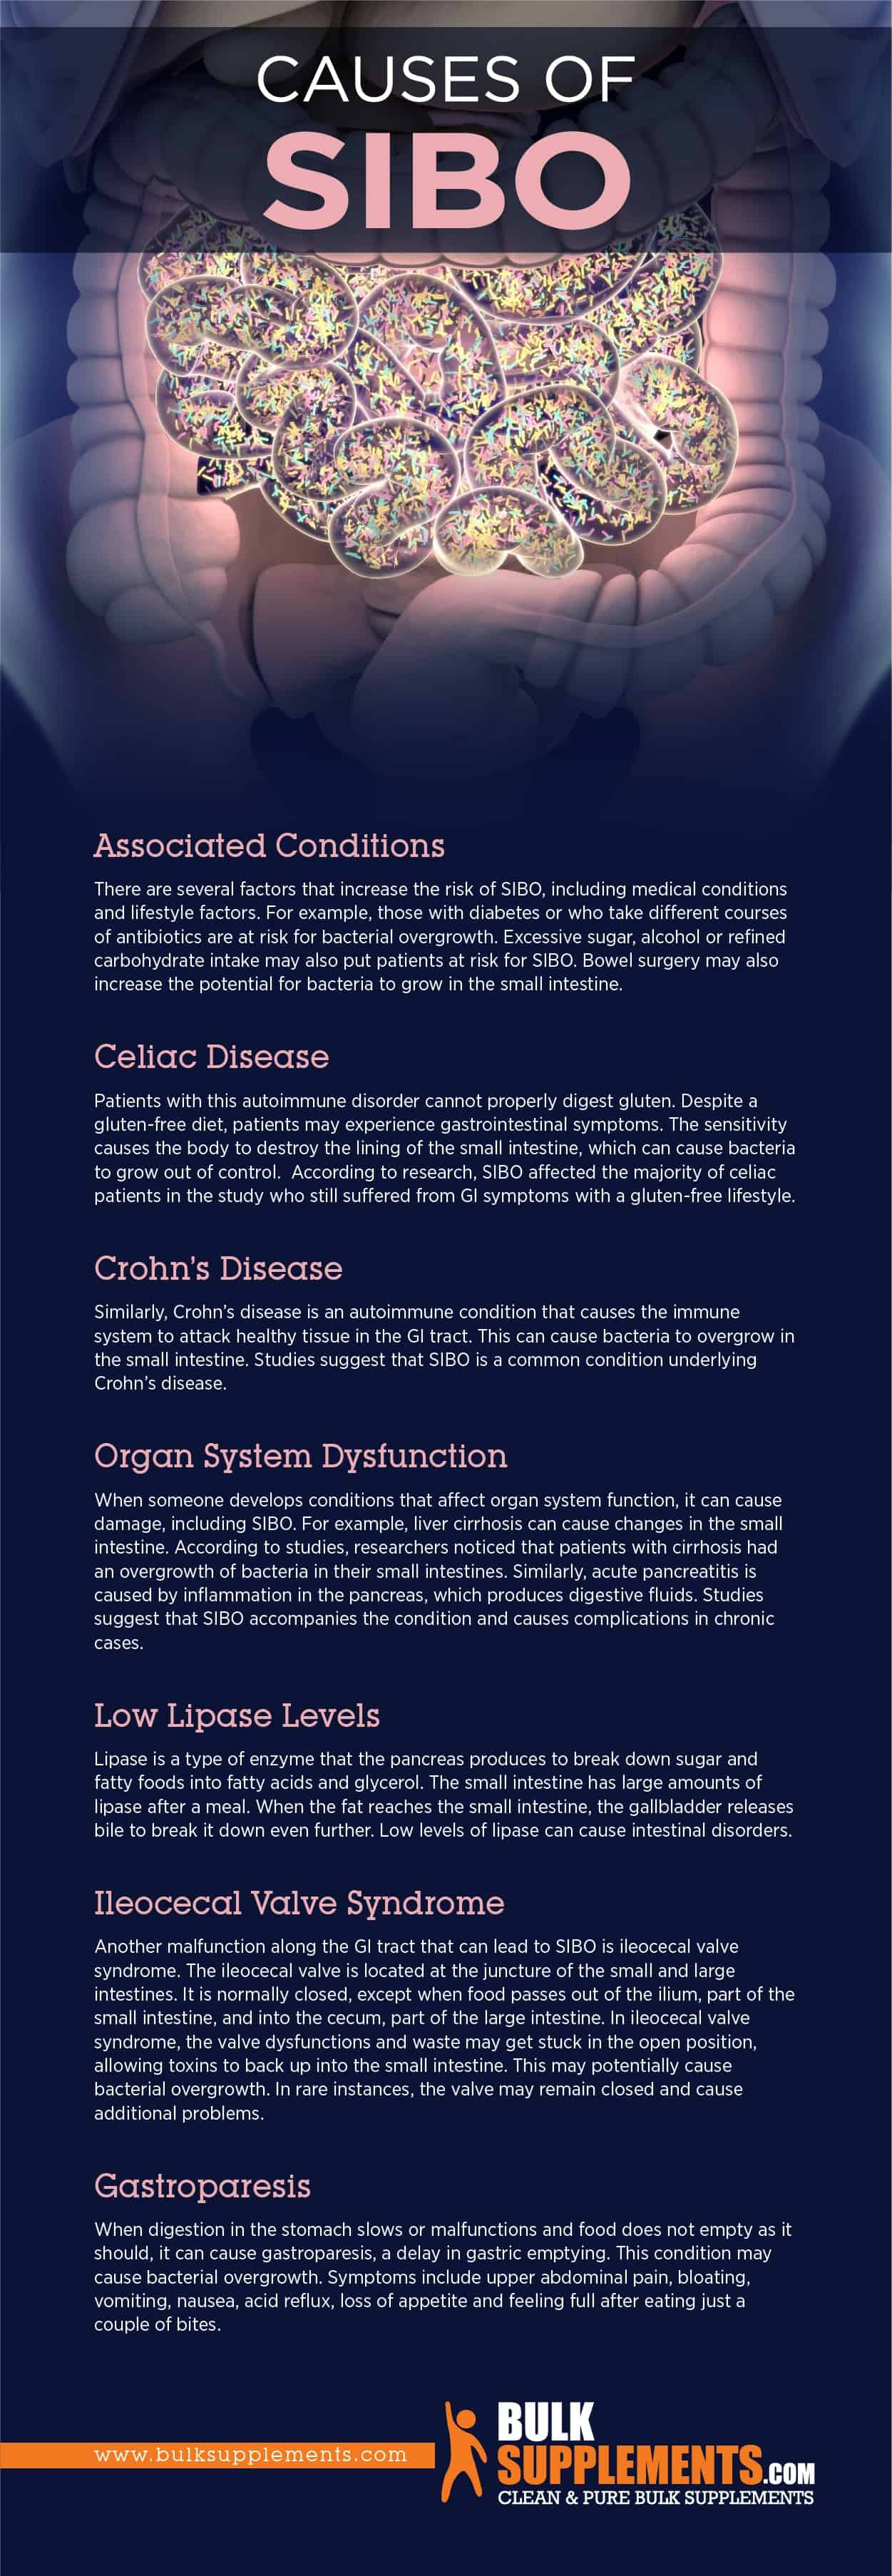 Causes of SIBO